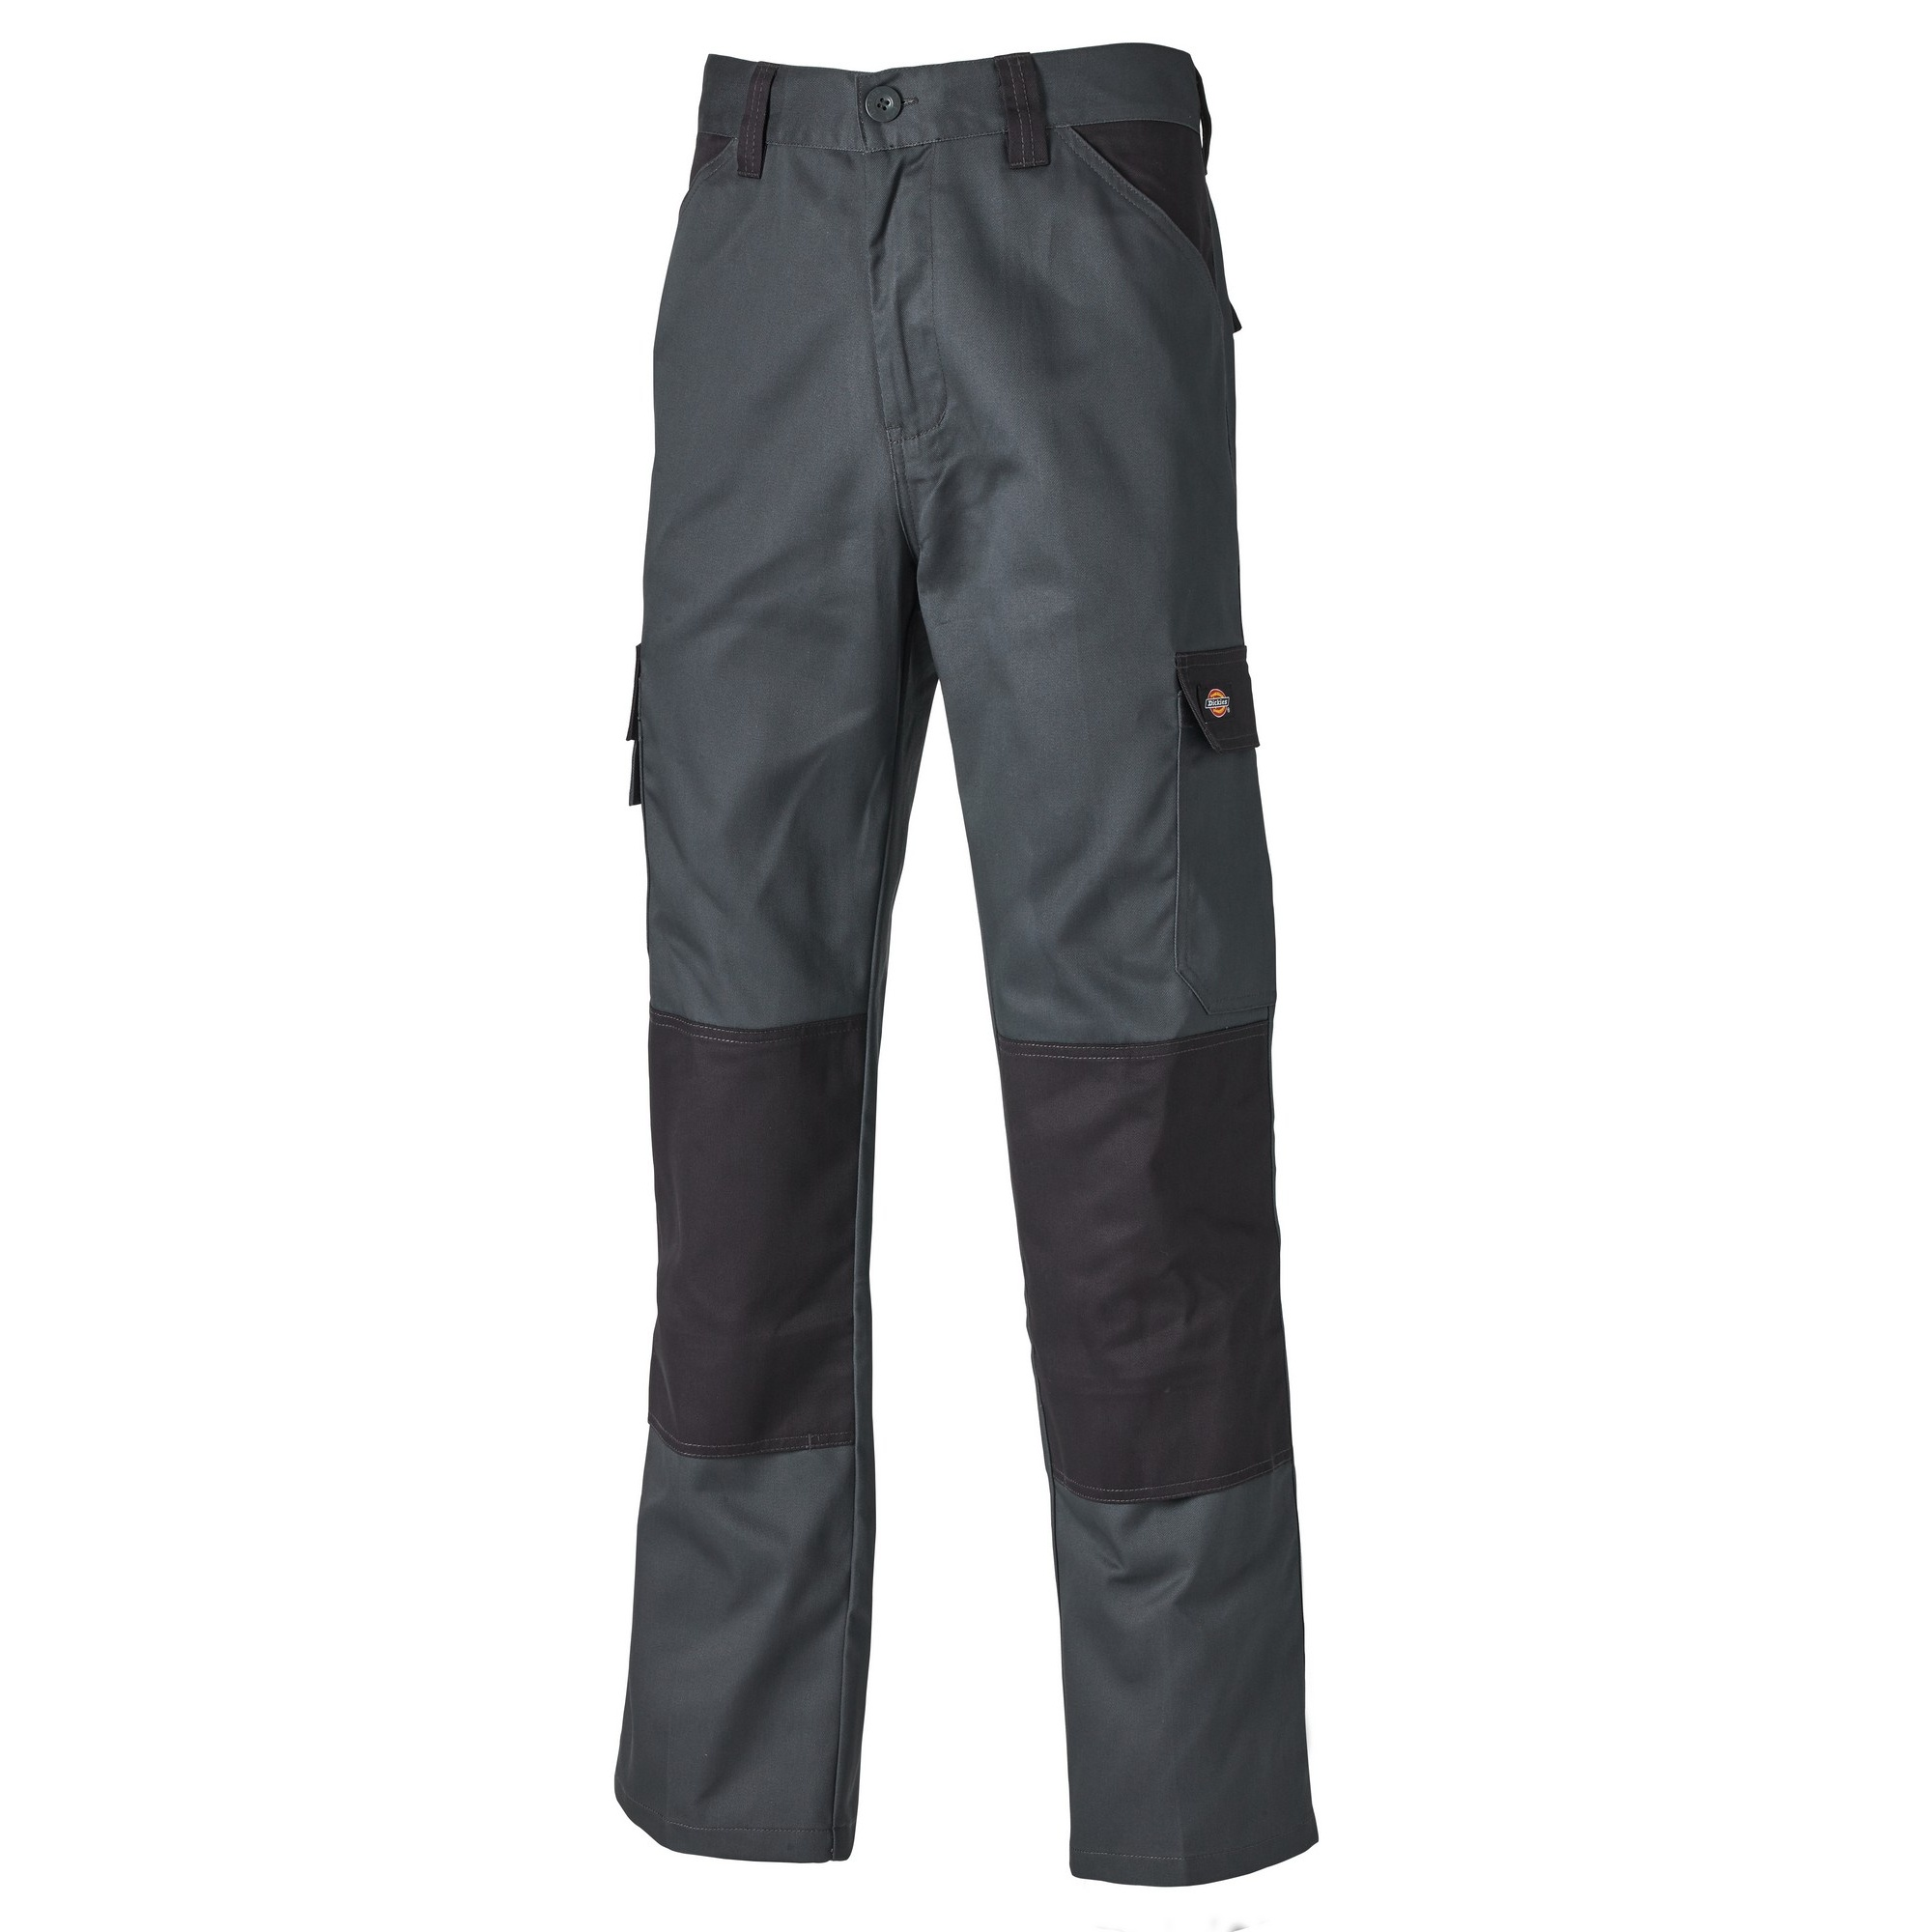 Similar Products to Carhartt Ripstop Cargo Work Pant for Mens